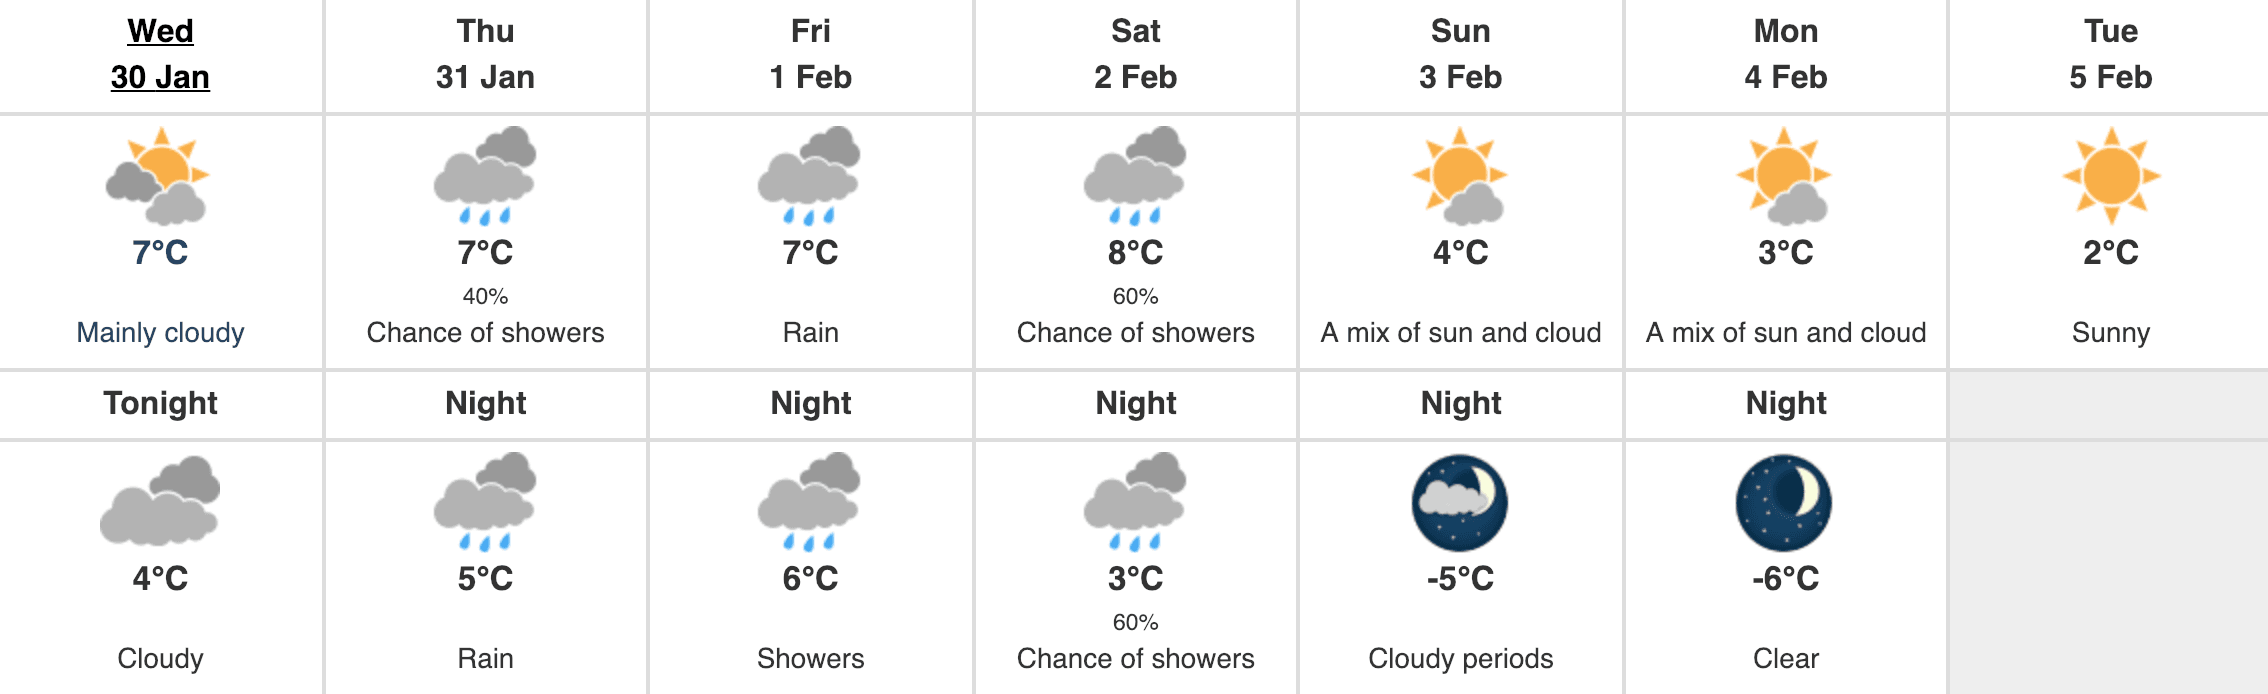 Vancouver weather forecast